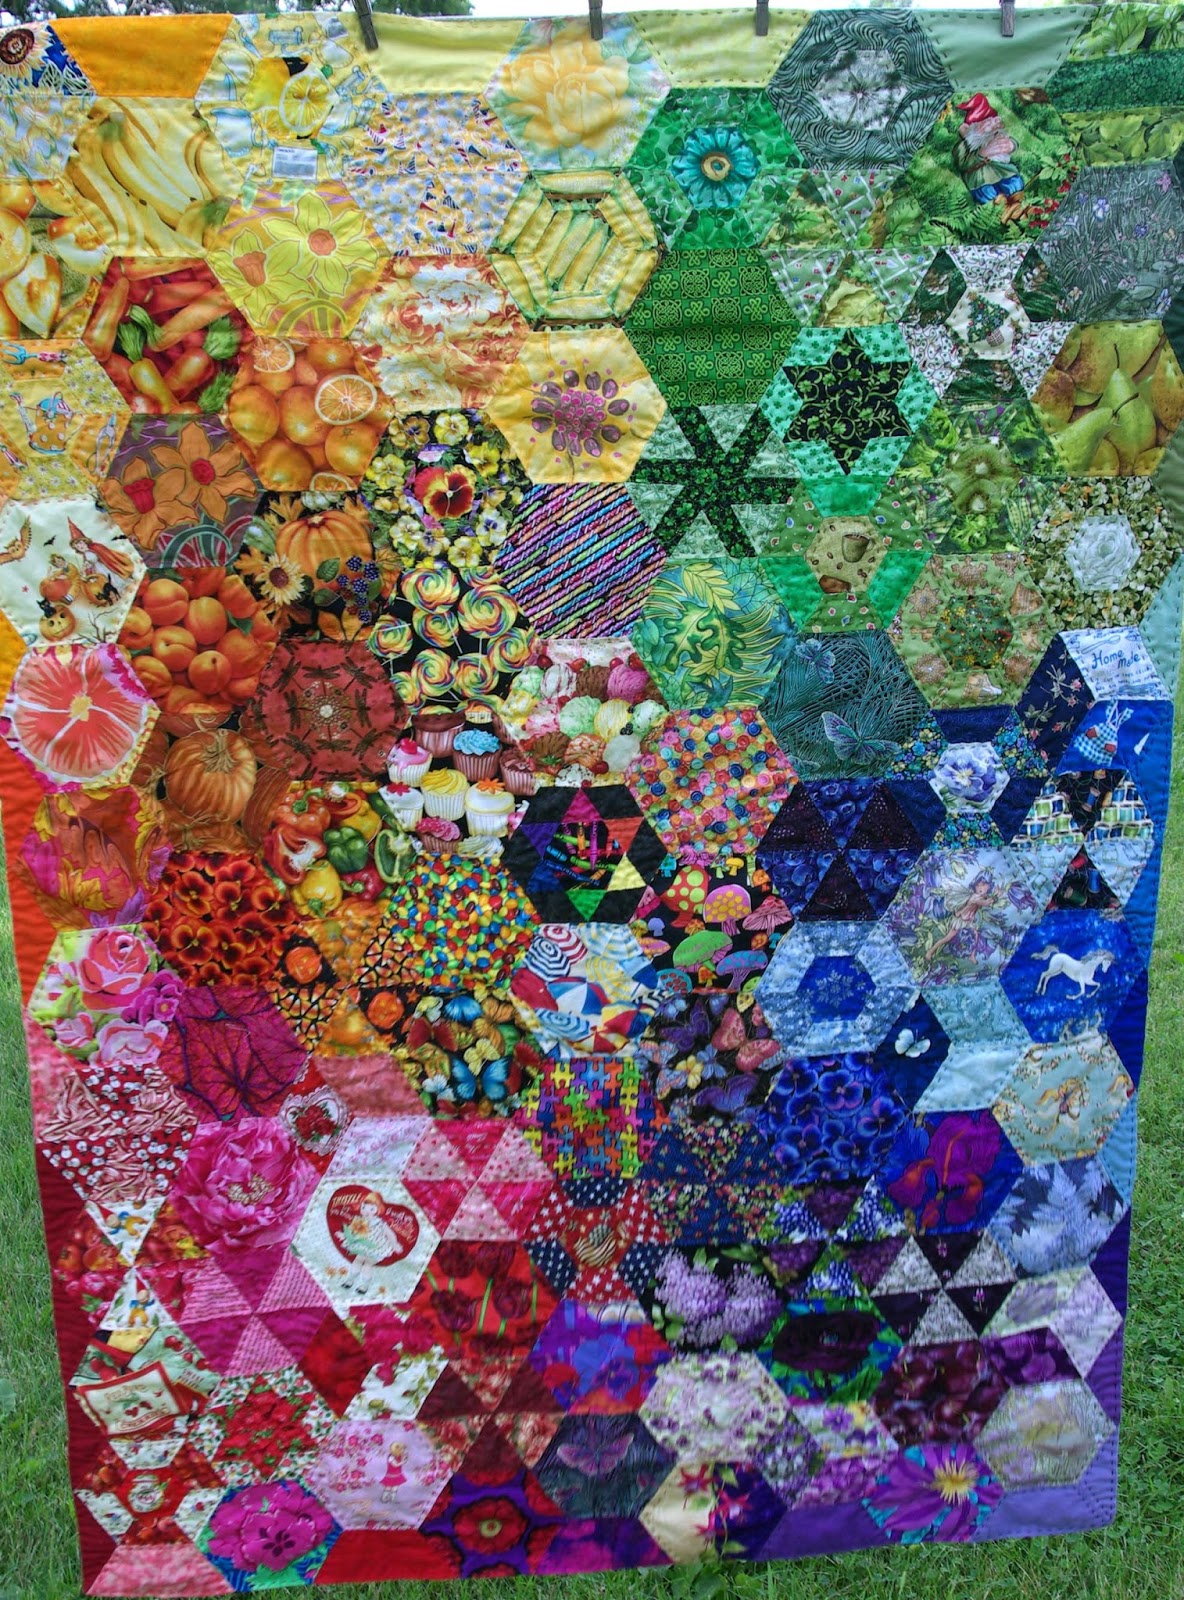 Sane Crazy Crumby Quilting A Rainbow of Favorite Things